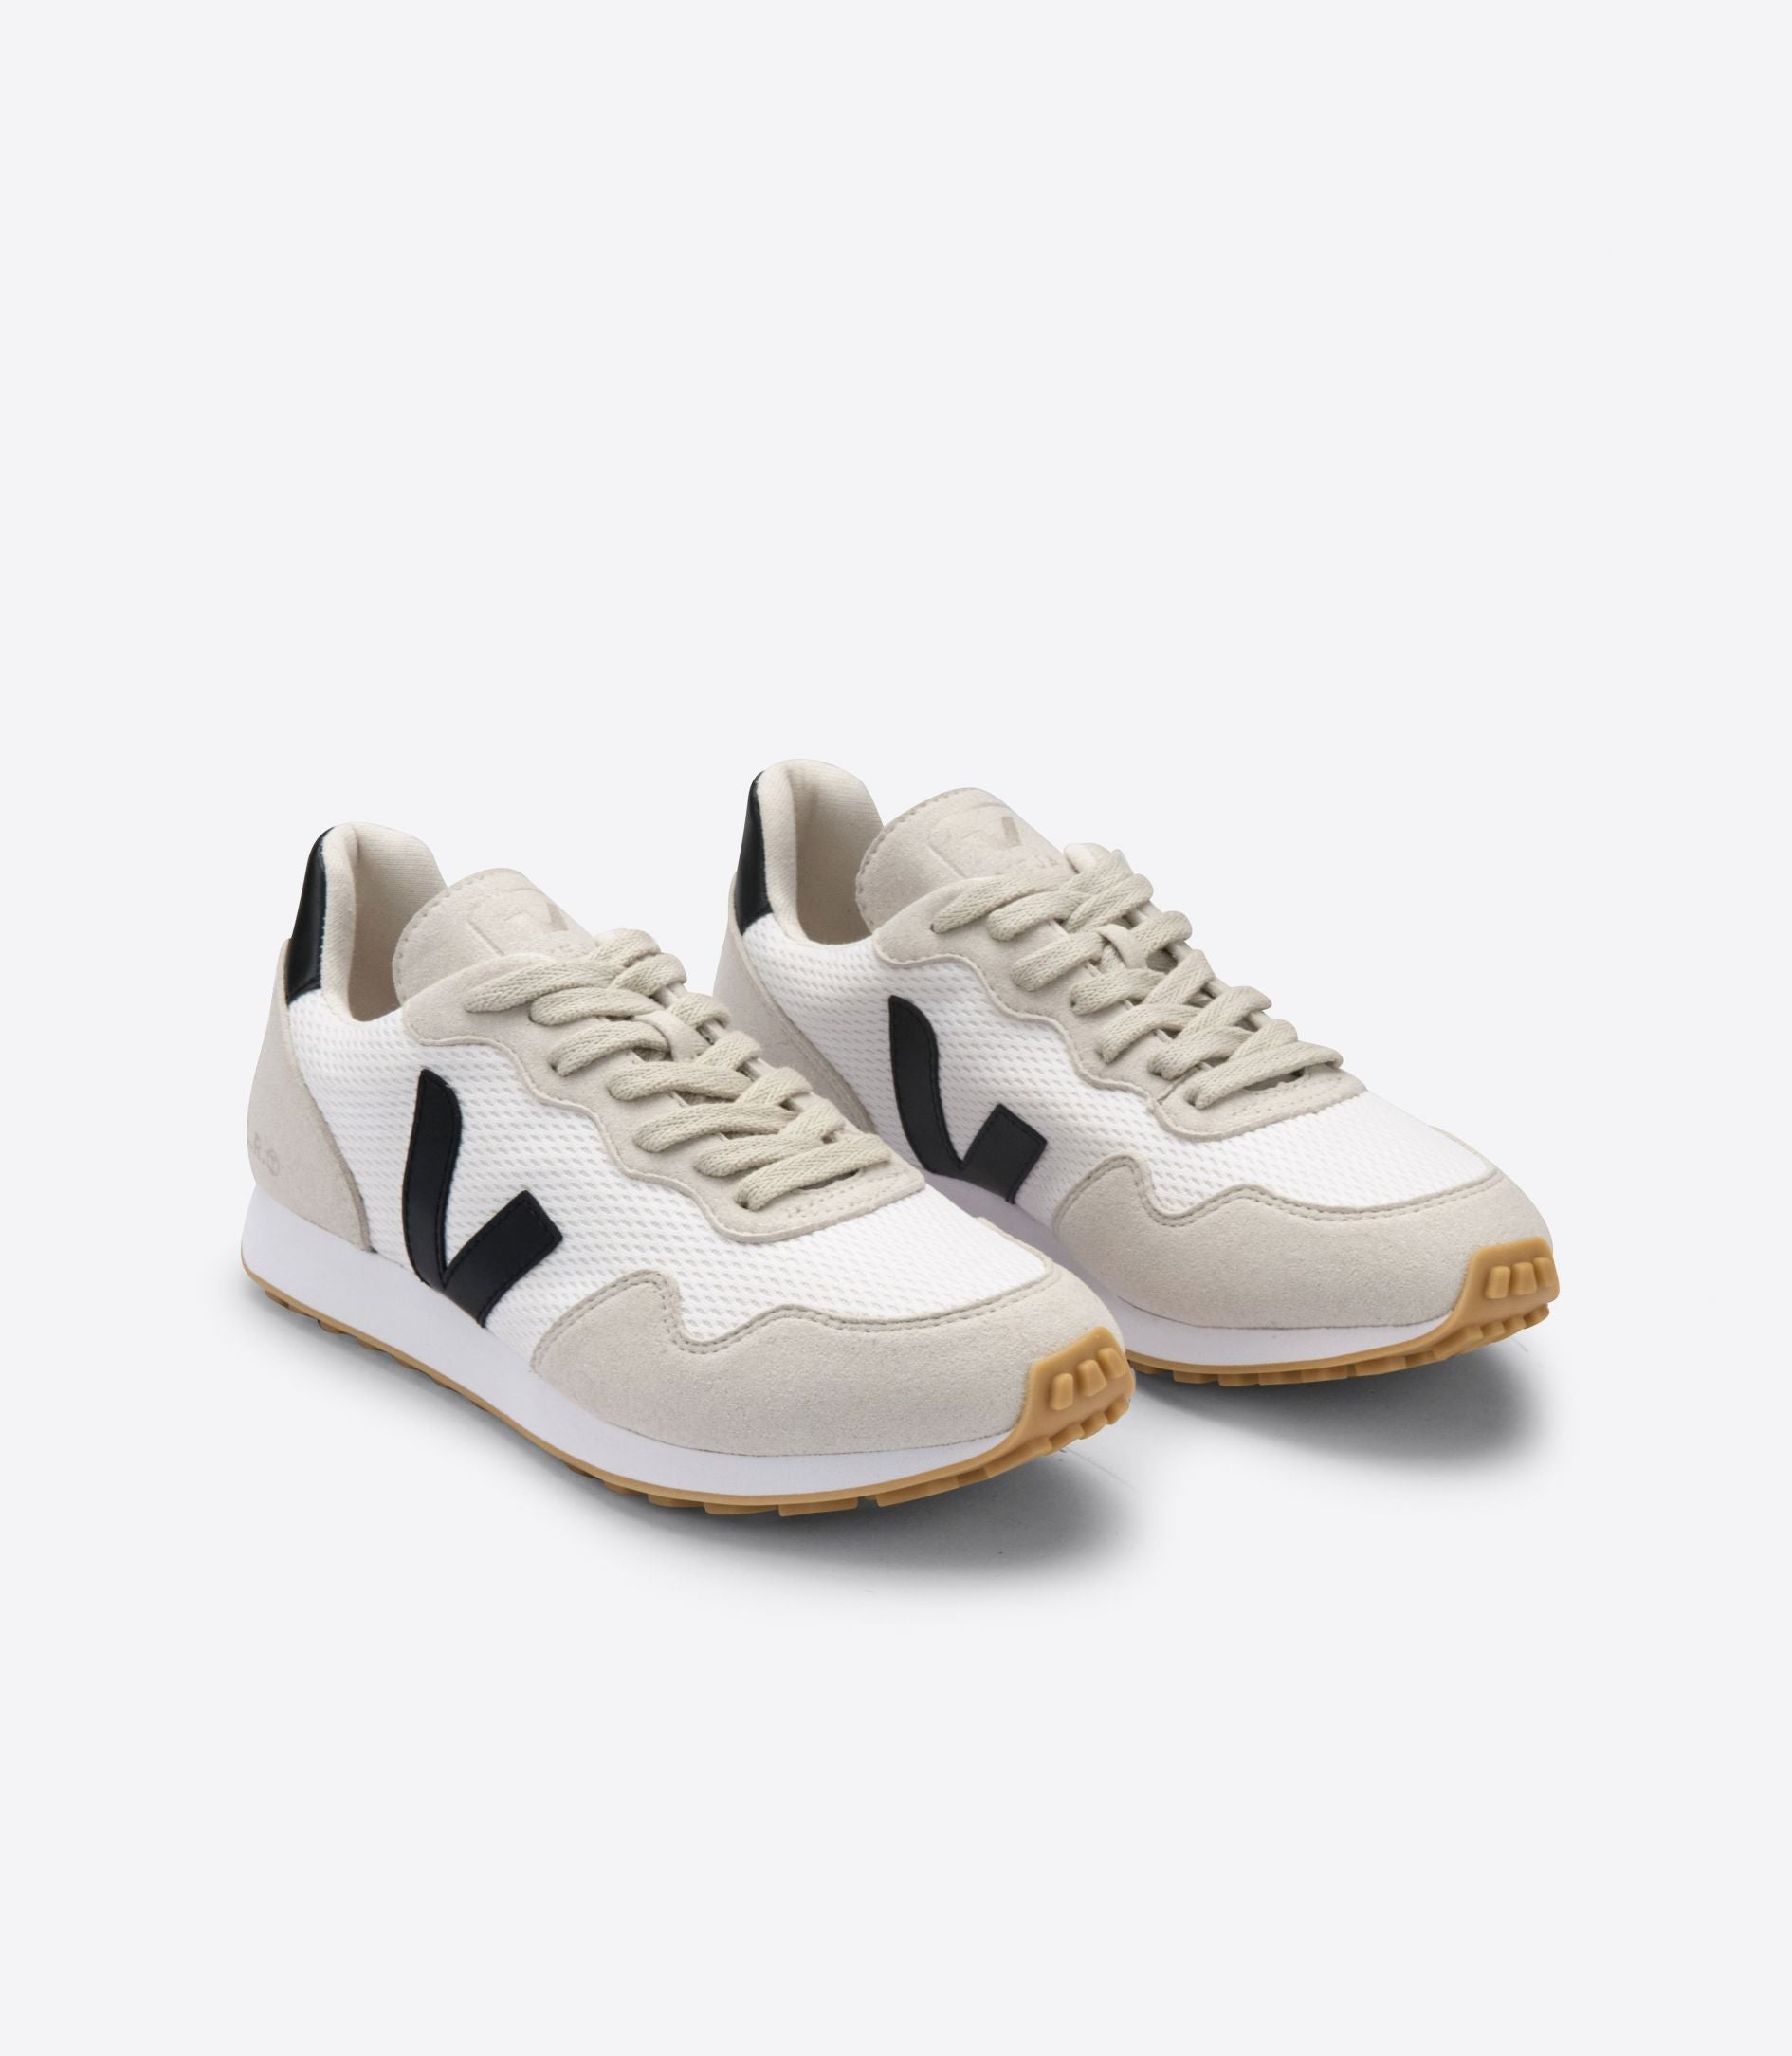 DEPORTIVAS Veja SDU WHITE BLACK NATURAL